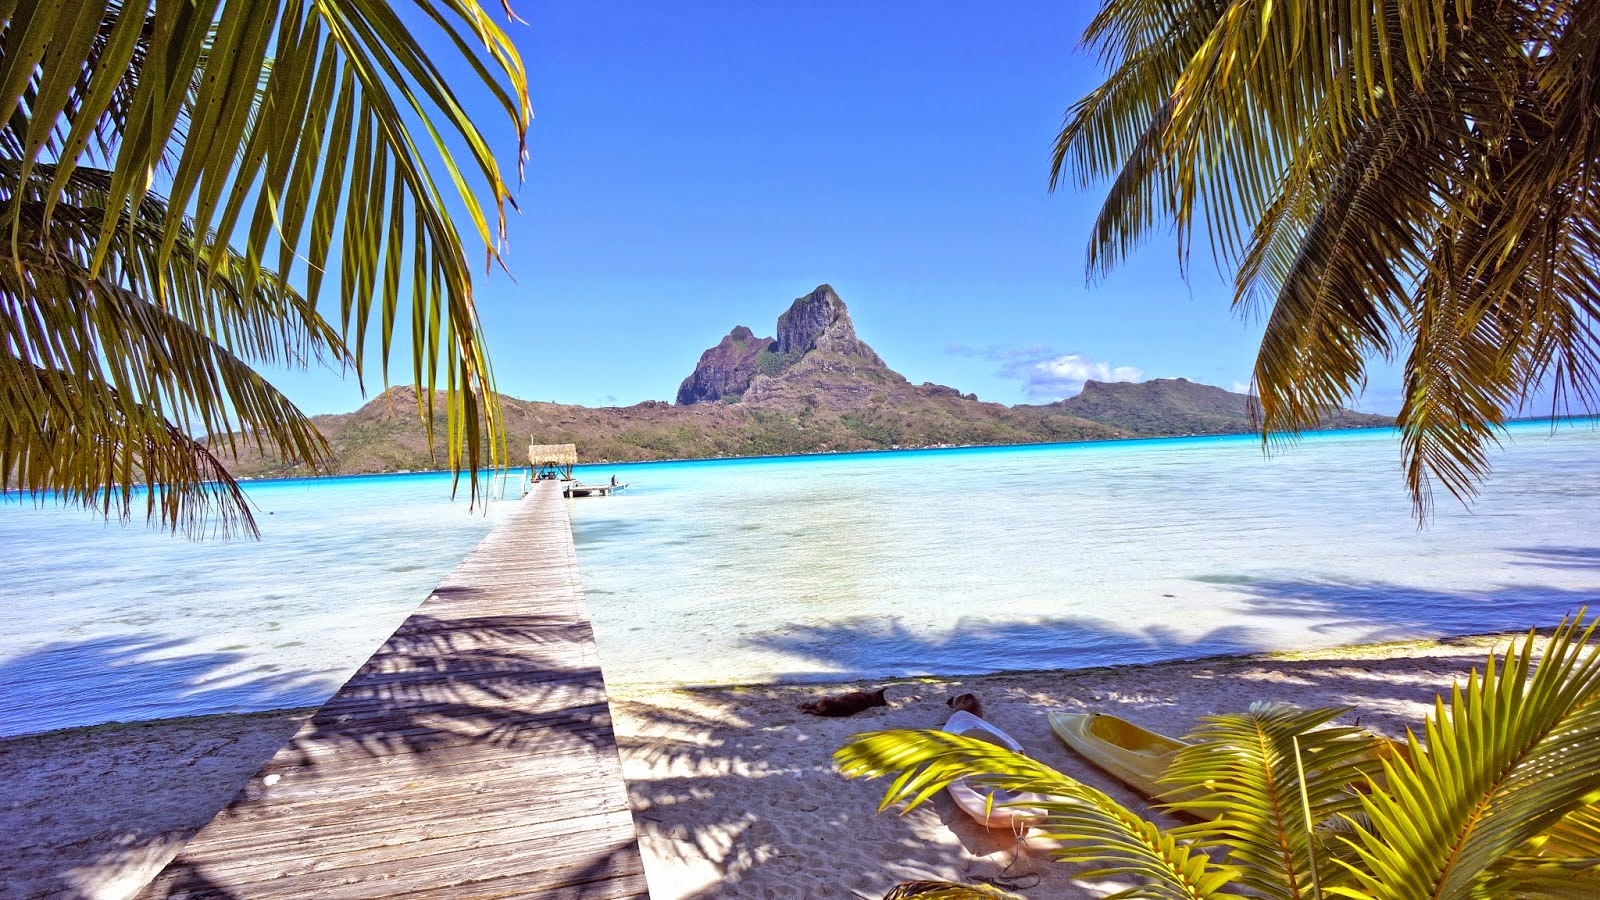 Another view from Eden Beach on Bora Bora, one of the world's best beaches